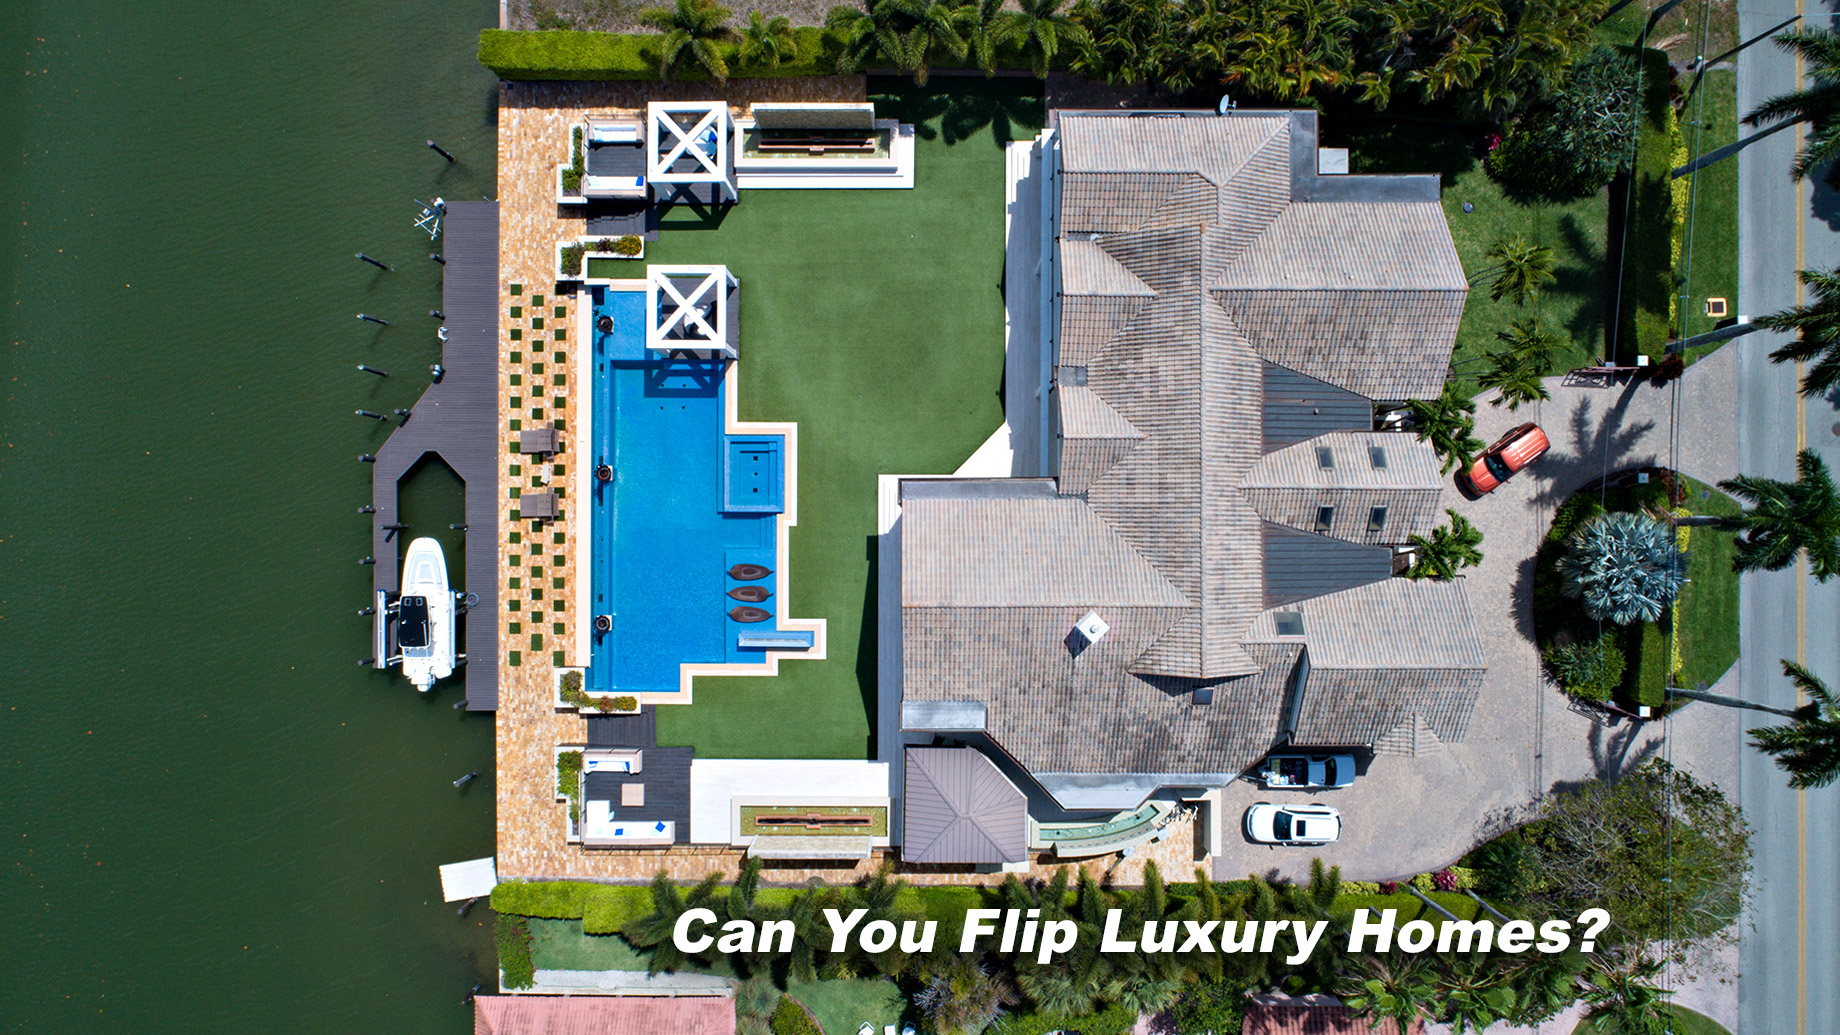 Can You Flip Luxury Homes?